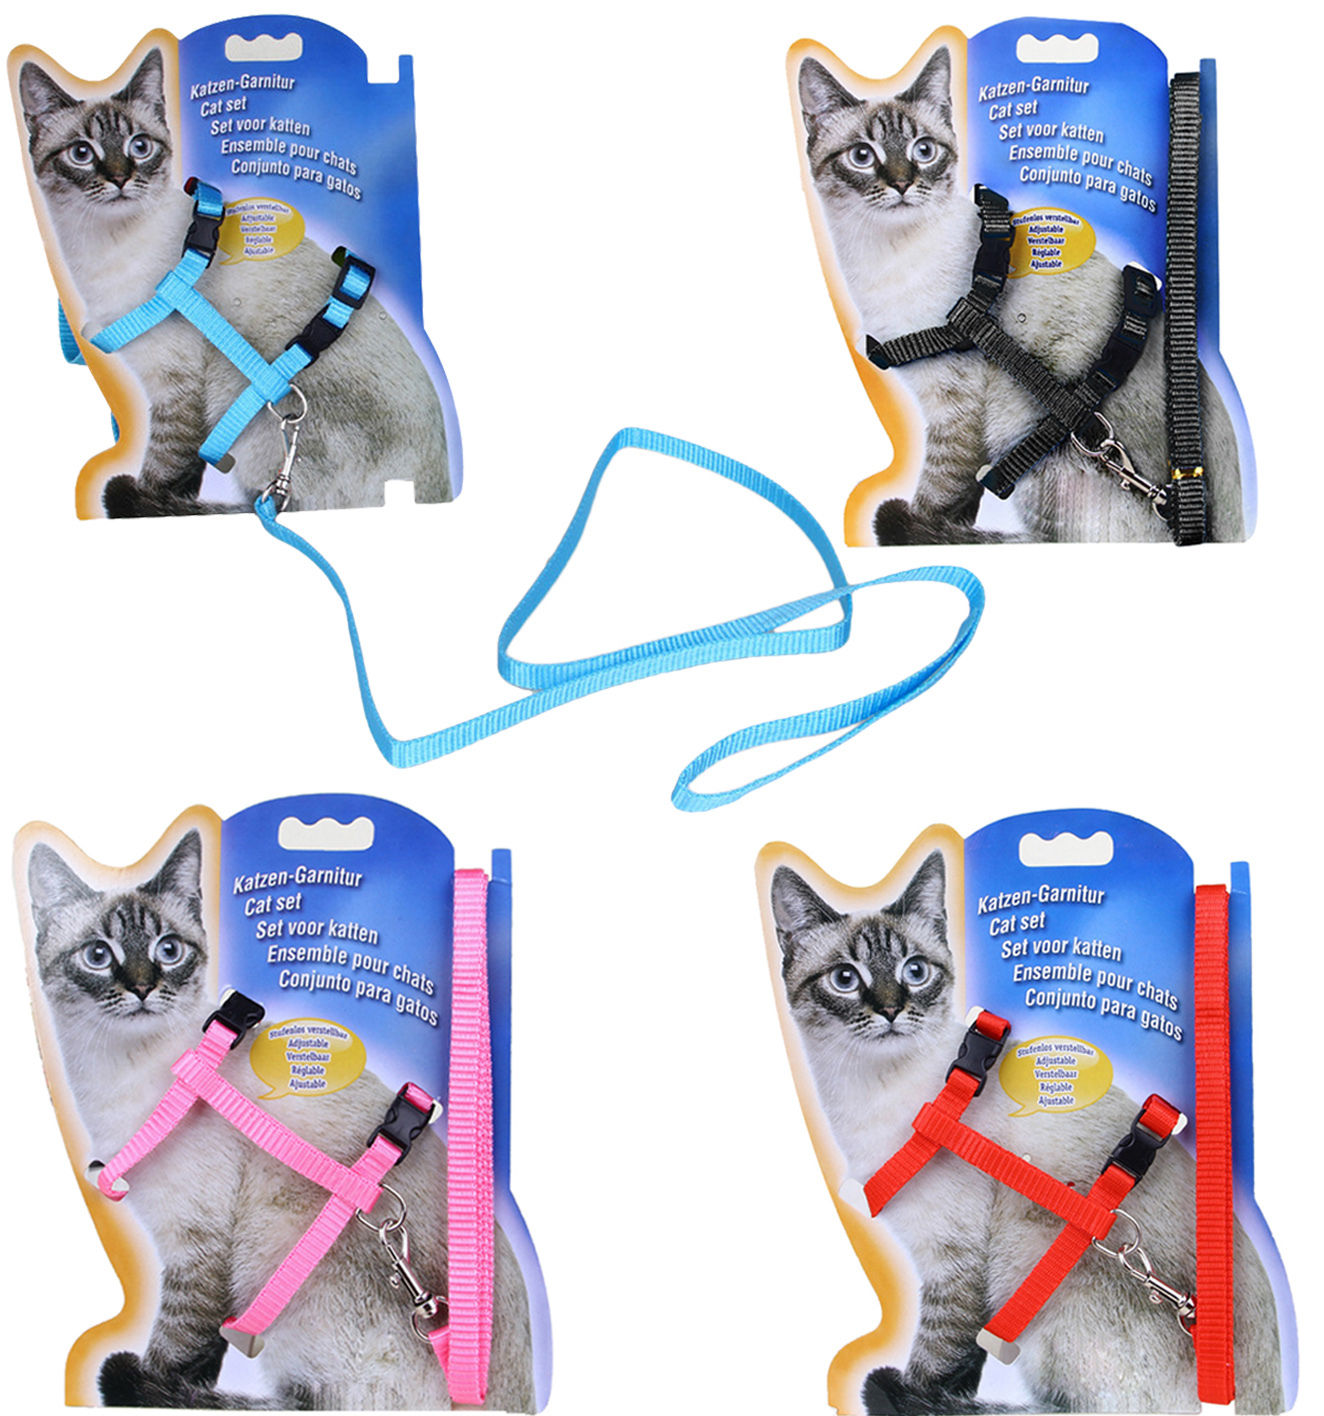 Bayppy Cat Set Puppy Leash Justerbar Harness Collar Nylon Rope Ledningssäkerhet Walking Bröstband för Cat Small Animal Pet 4 Färg